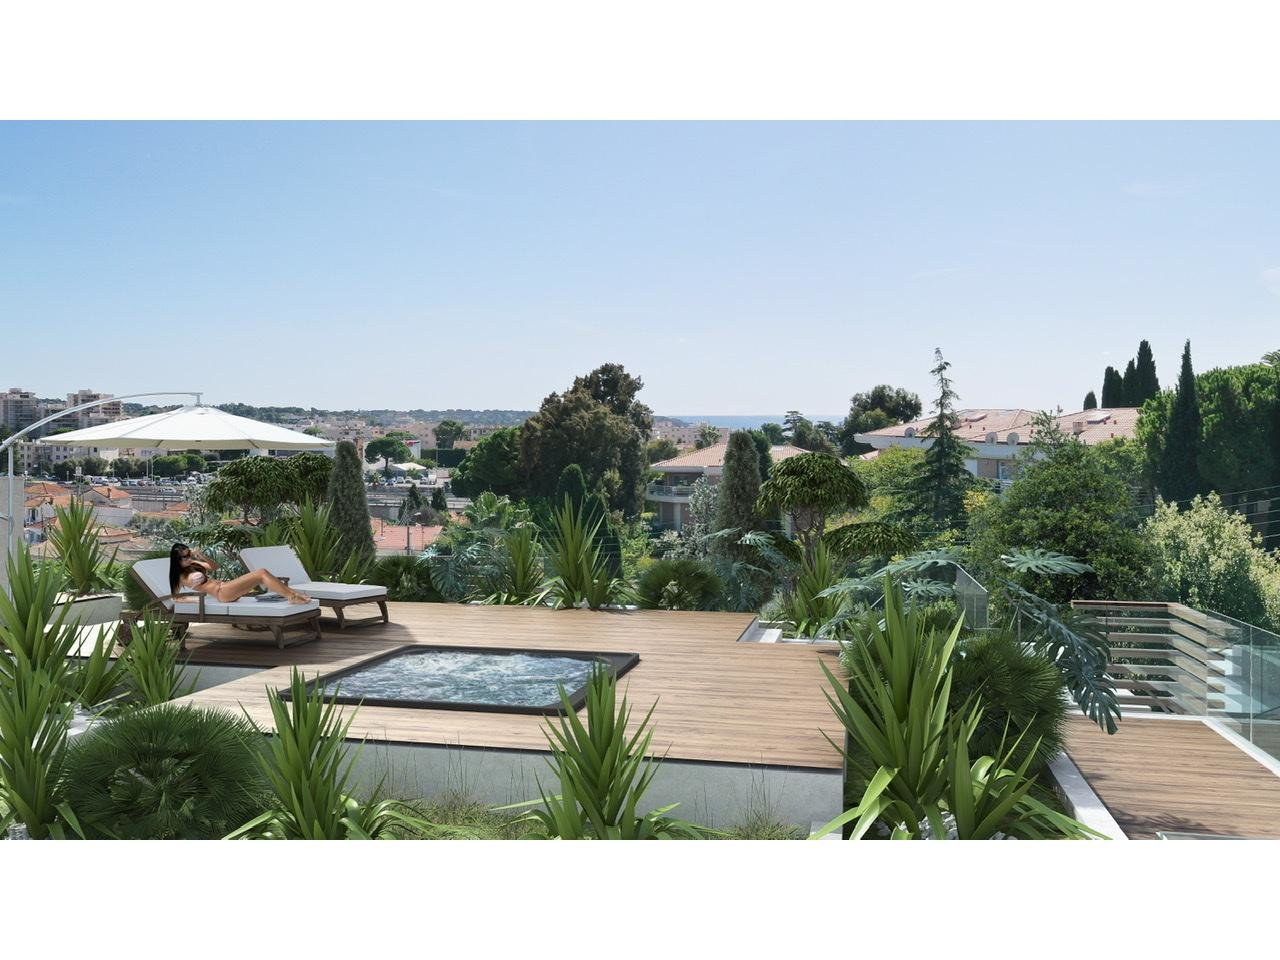 Appartement  4 Rooms 84.82m2  for sale   636 000 €